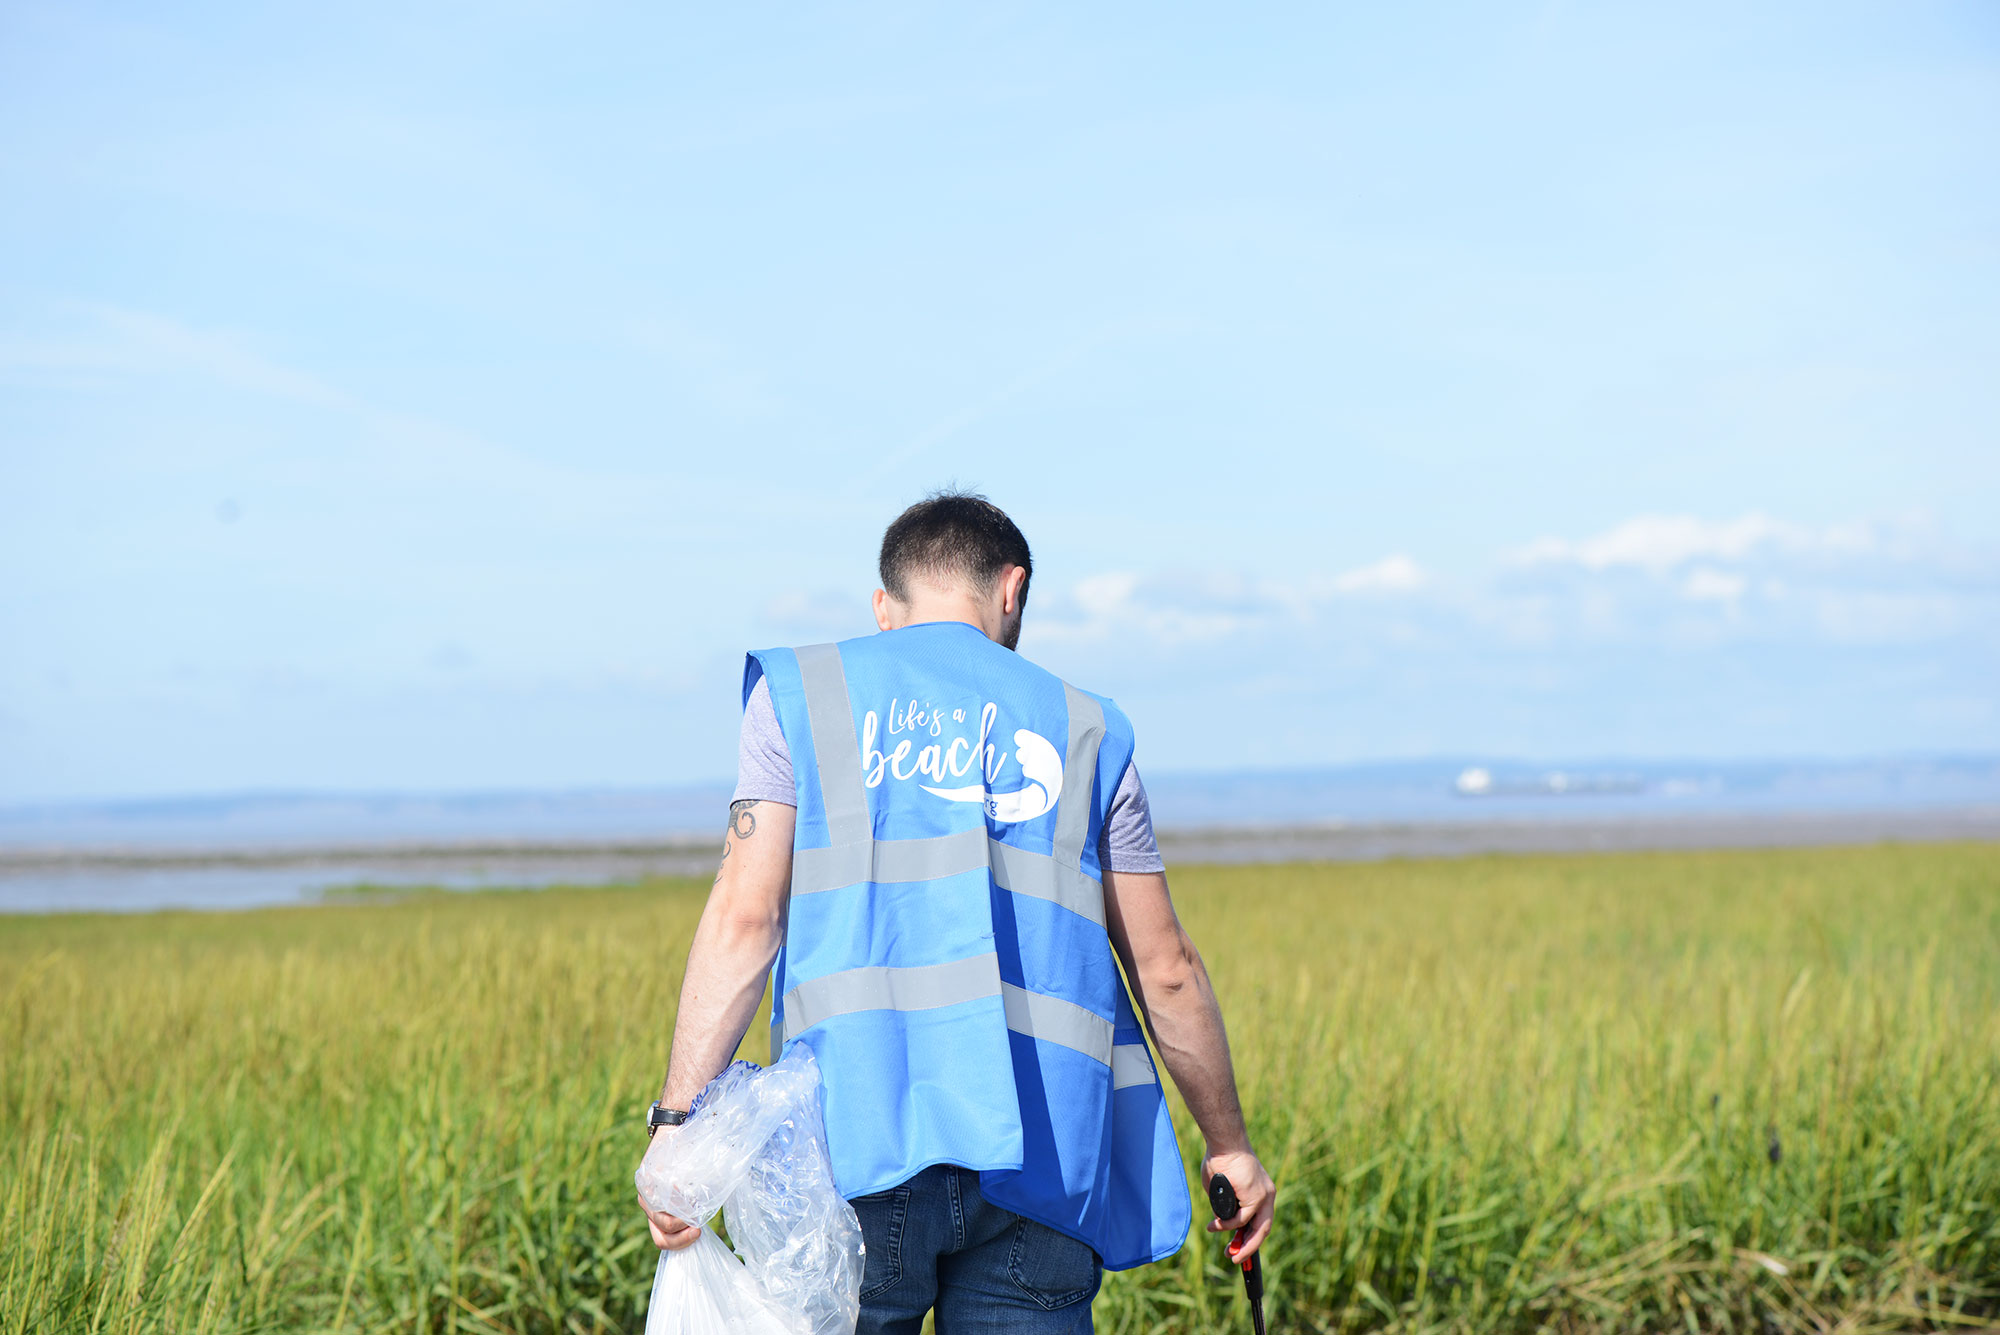 ProCook not-for-profit, Life's a Beach collects 25kg of litter in beach clean